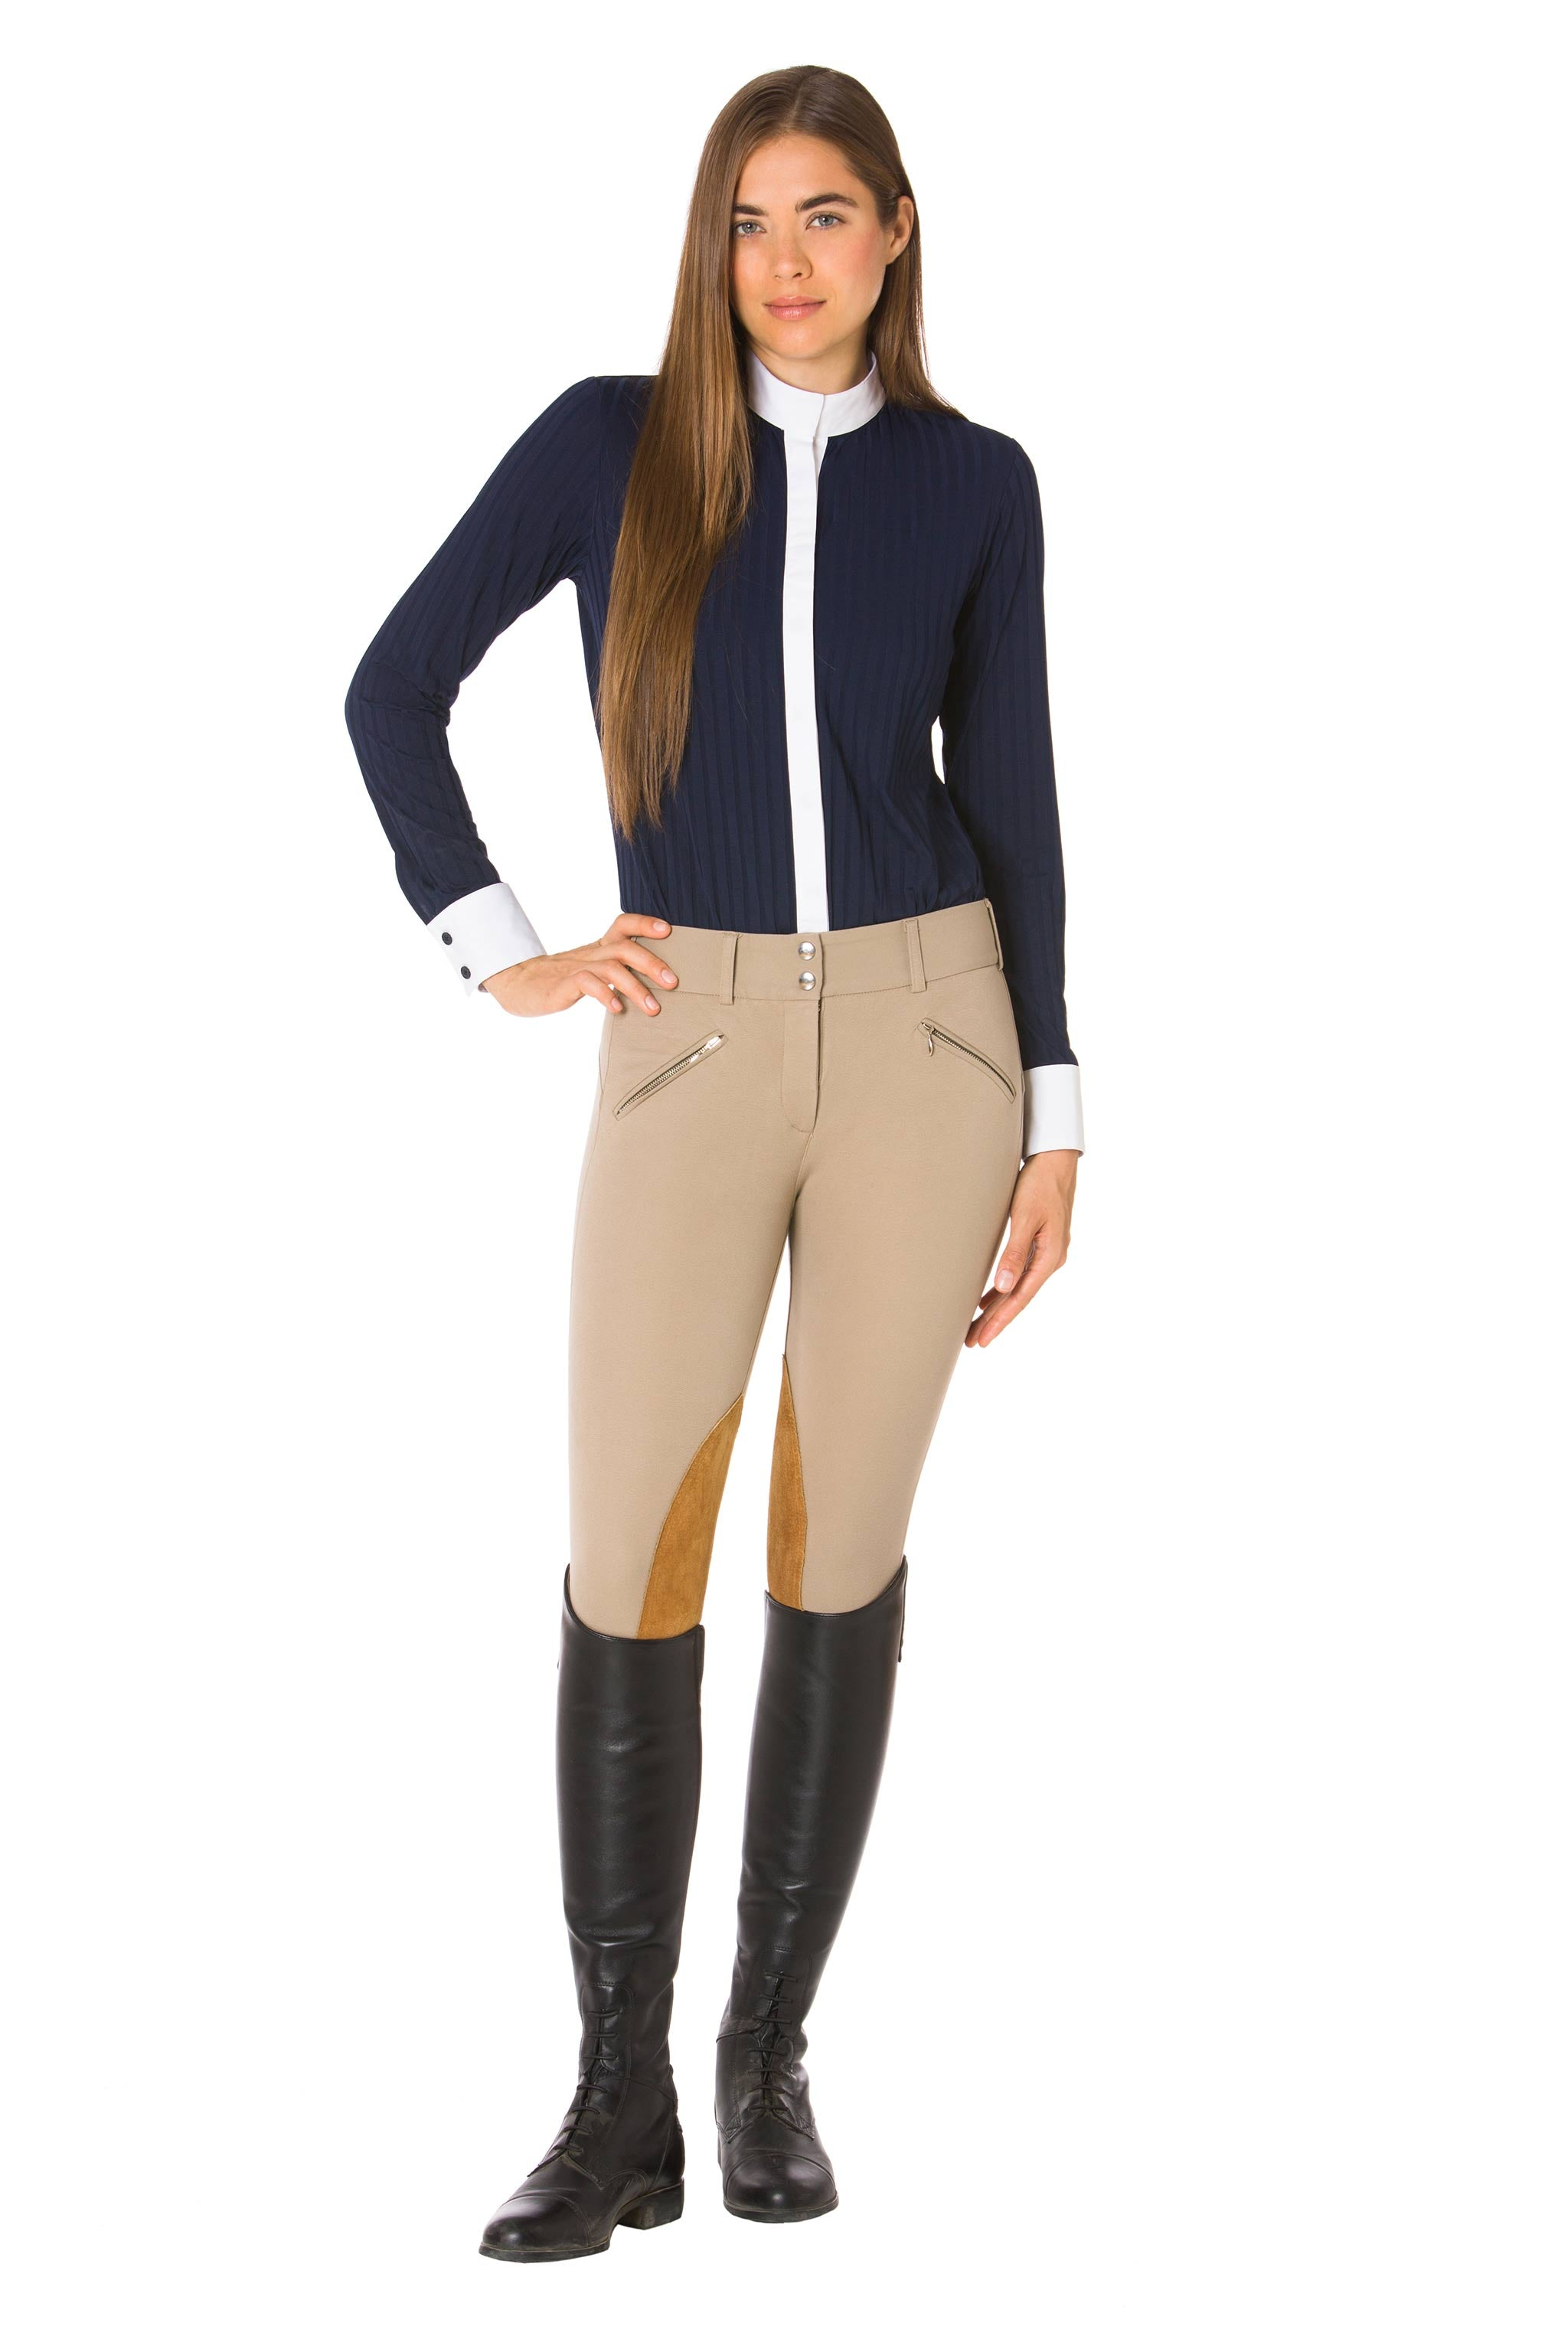 Wellington Tan-The Derby Riding Pant - Free x Rein